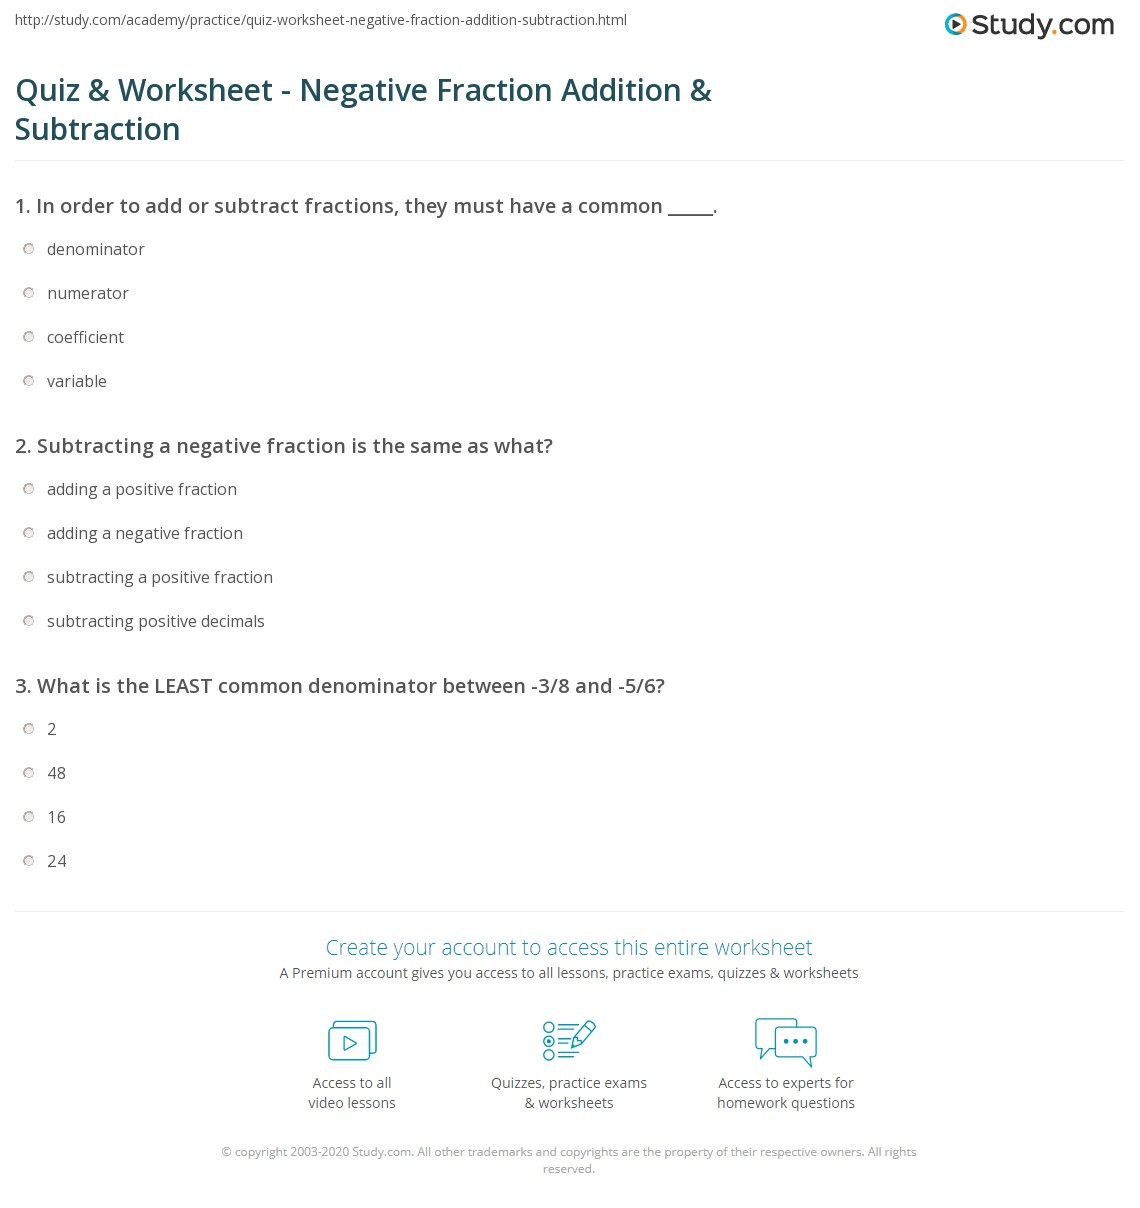 Quiz and Worksheet Negative Fraction Addition and Subtraction – Negative Fractions Worksheet